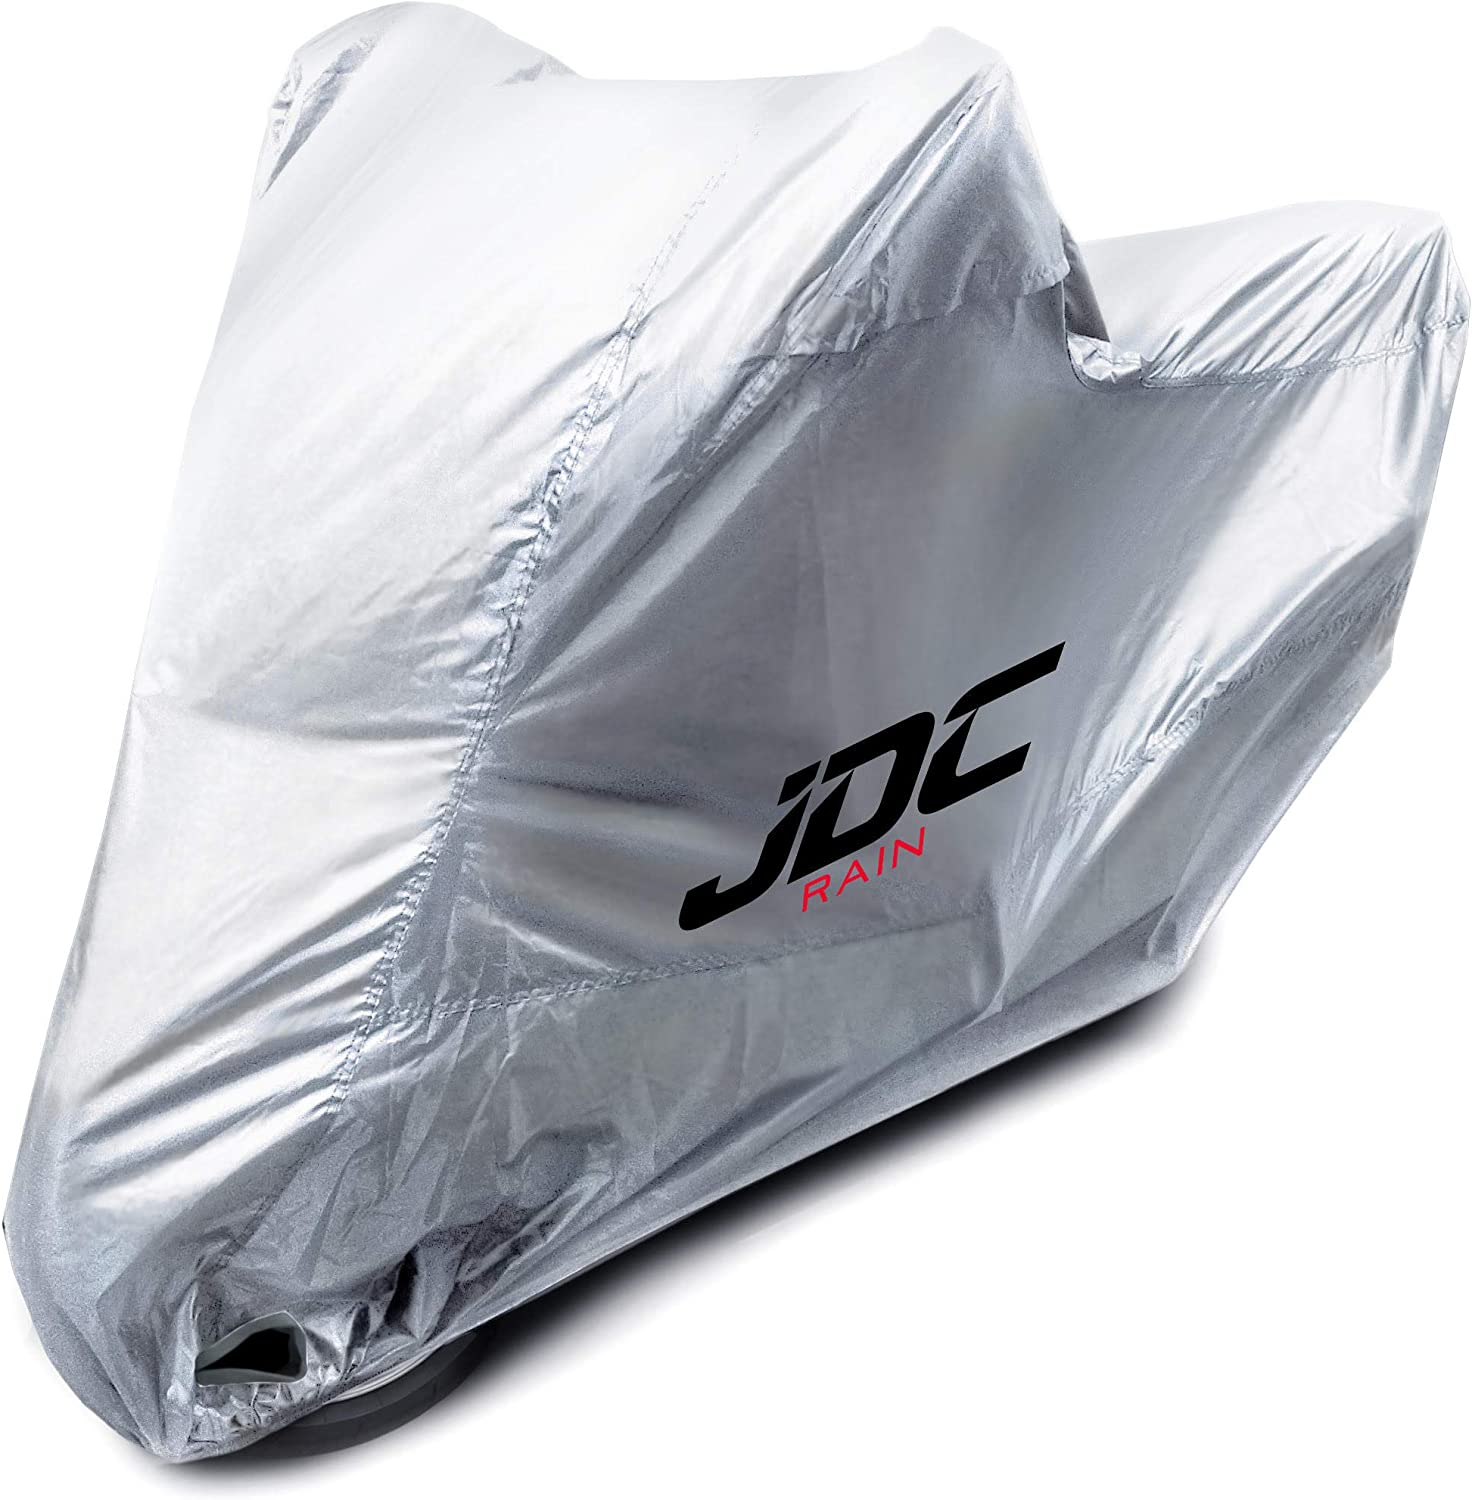 RAIN L Top Box Silver JDC Motorcycle Cover Waterproof